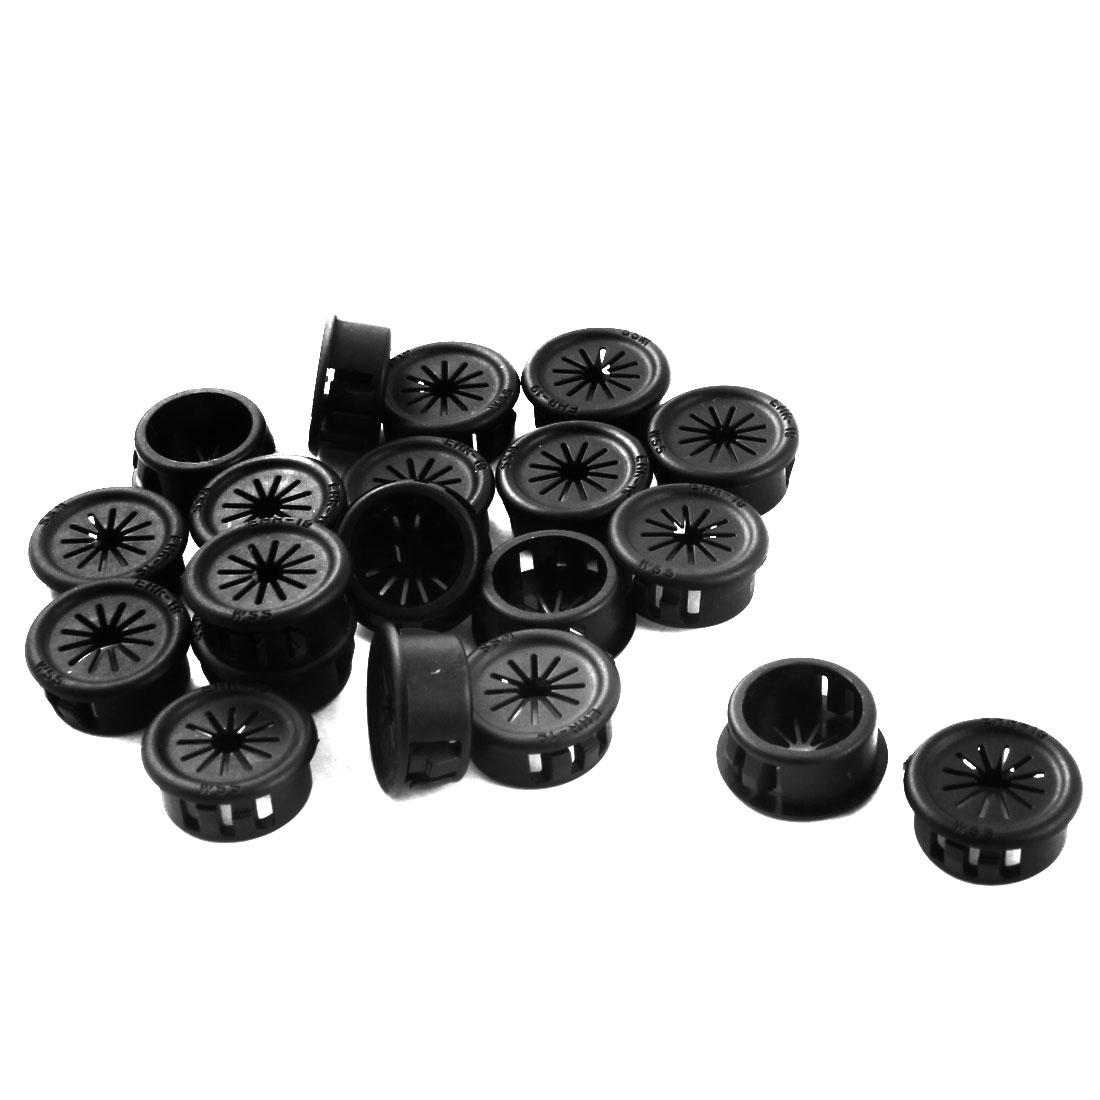 20Pcs 19mm Black Plastic Insulation Cable Pipe Hose Snap Bushing Protector Grommet Harness